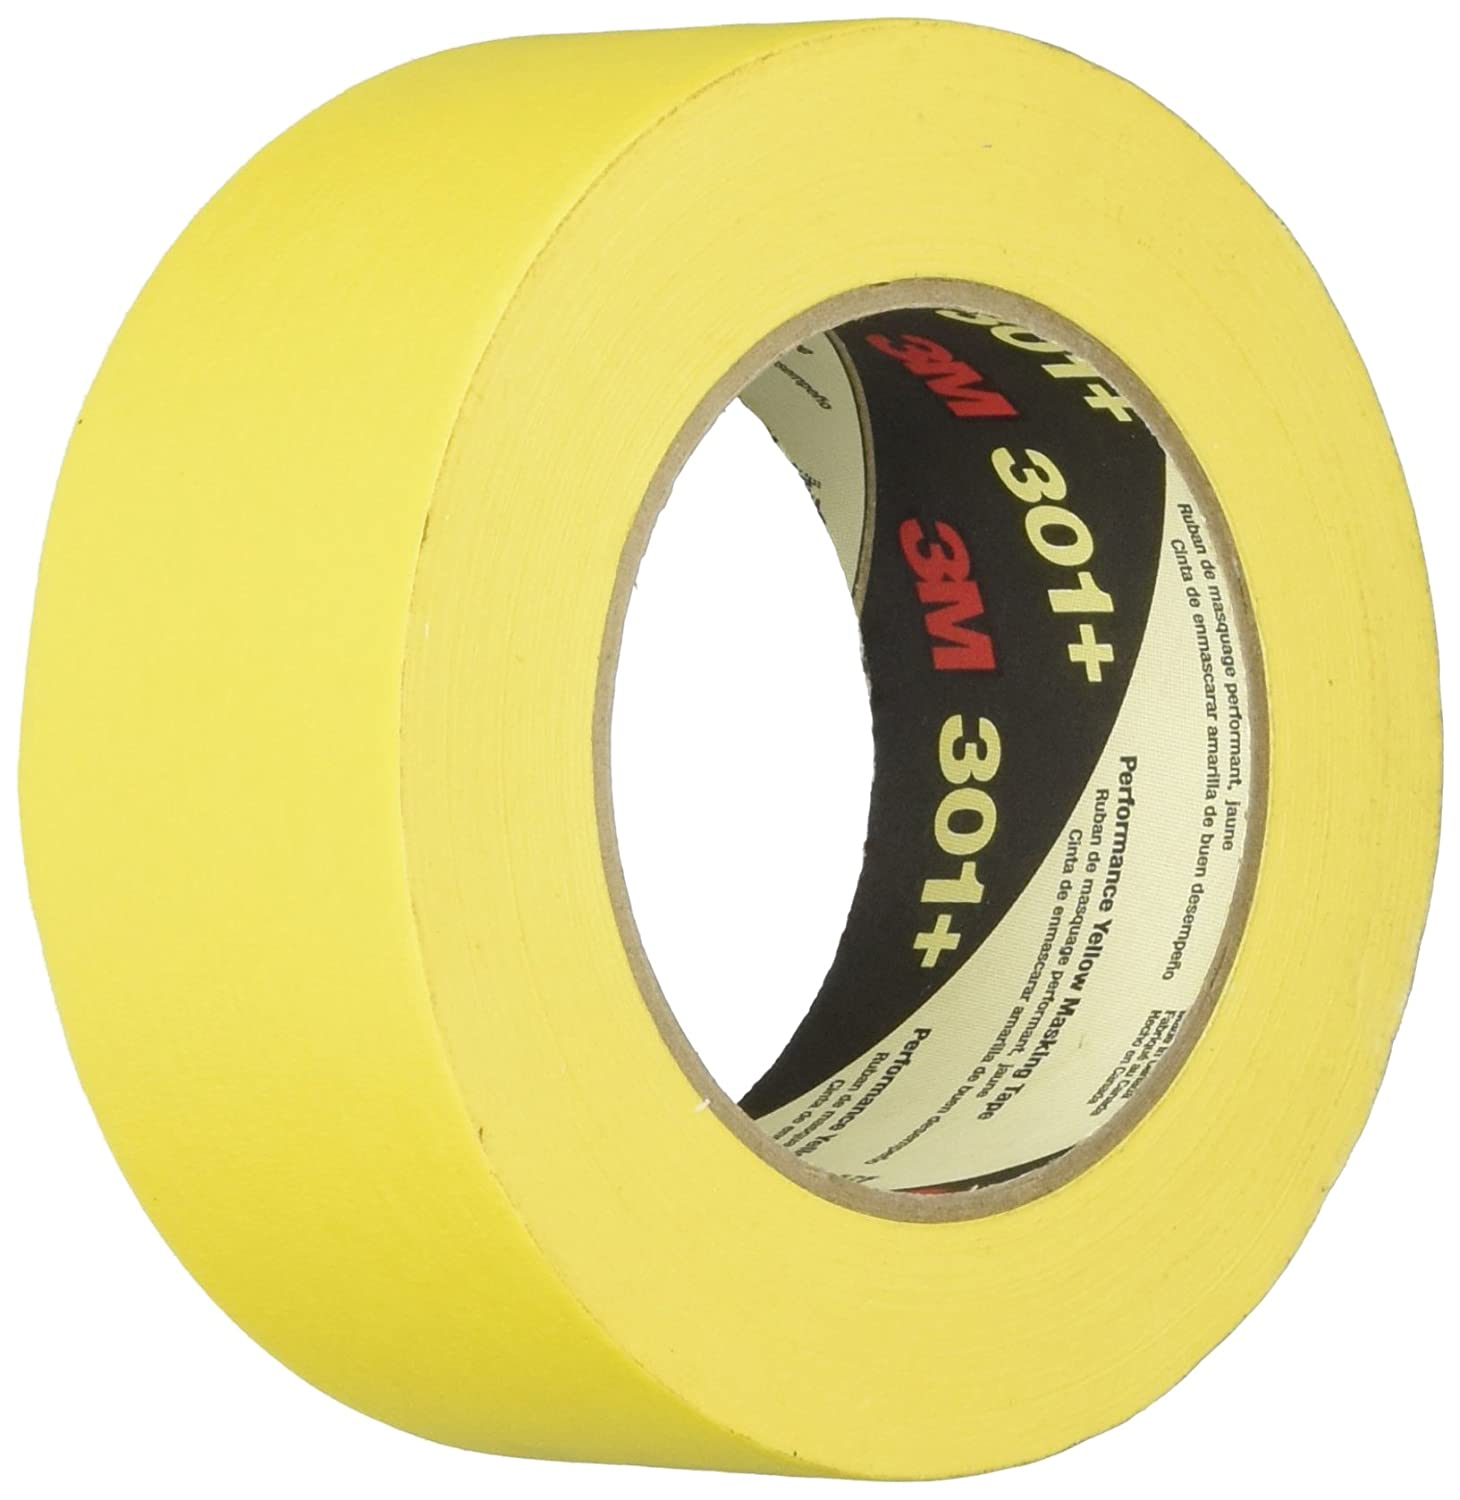 3M Performance Yellow Masking Tape, 2 Inches x 60 Yards, Yellow - 1462003